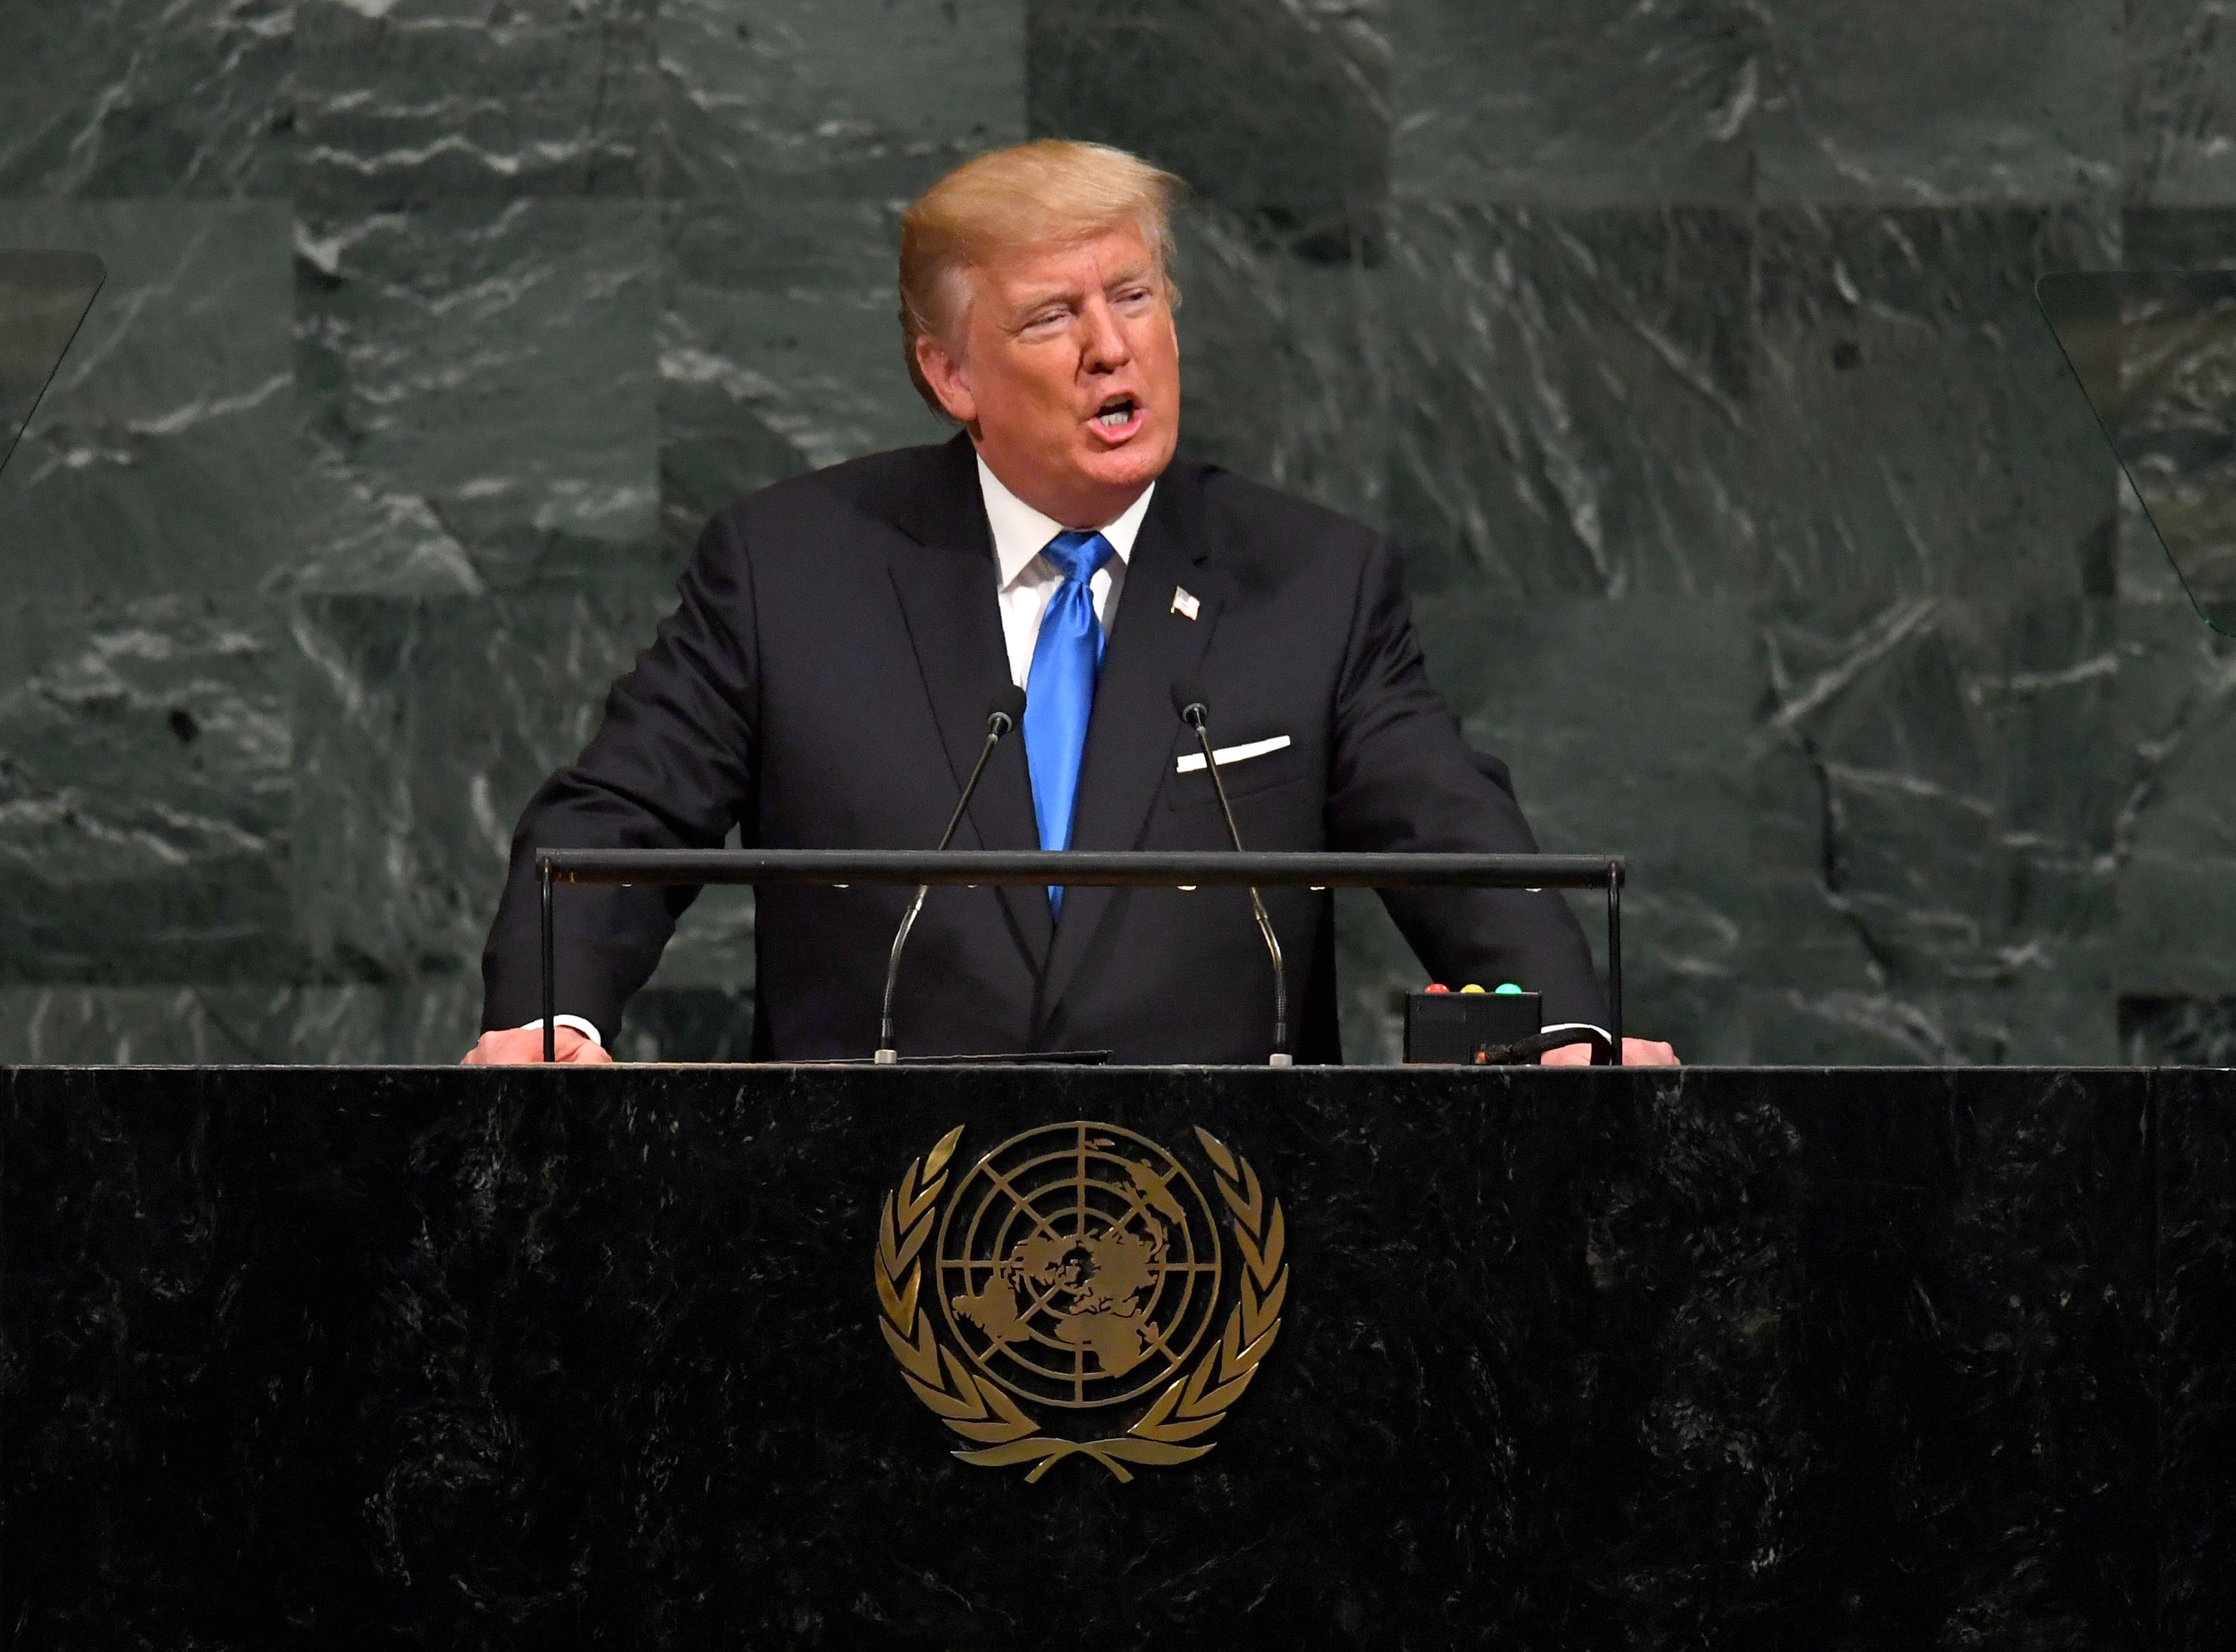 President Donald Trump addresses the 72nd Annual UN General Assembly in New York on Sept. 19, 2017. (TIMOTHY A. CLARY/AFP/Getty Images)